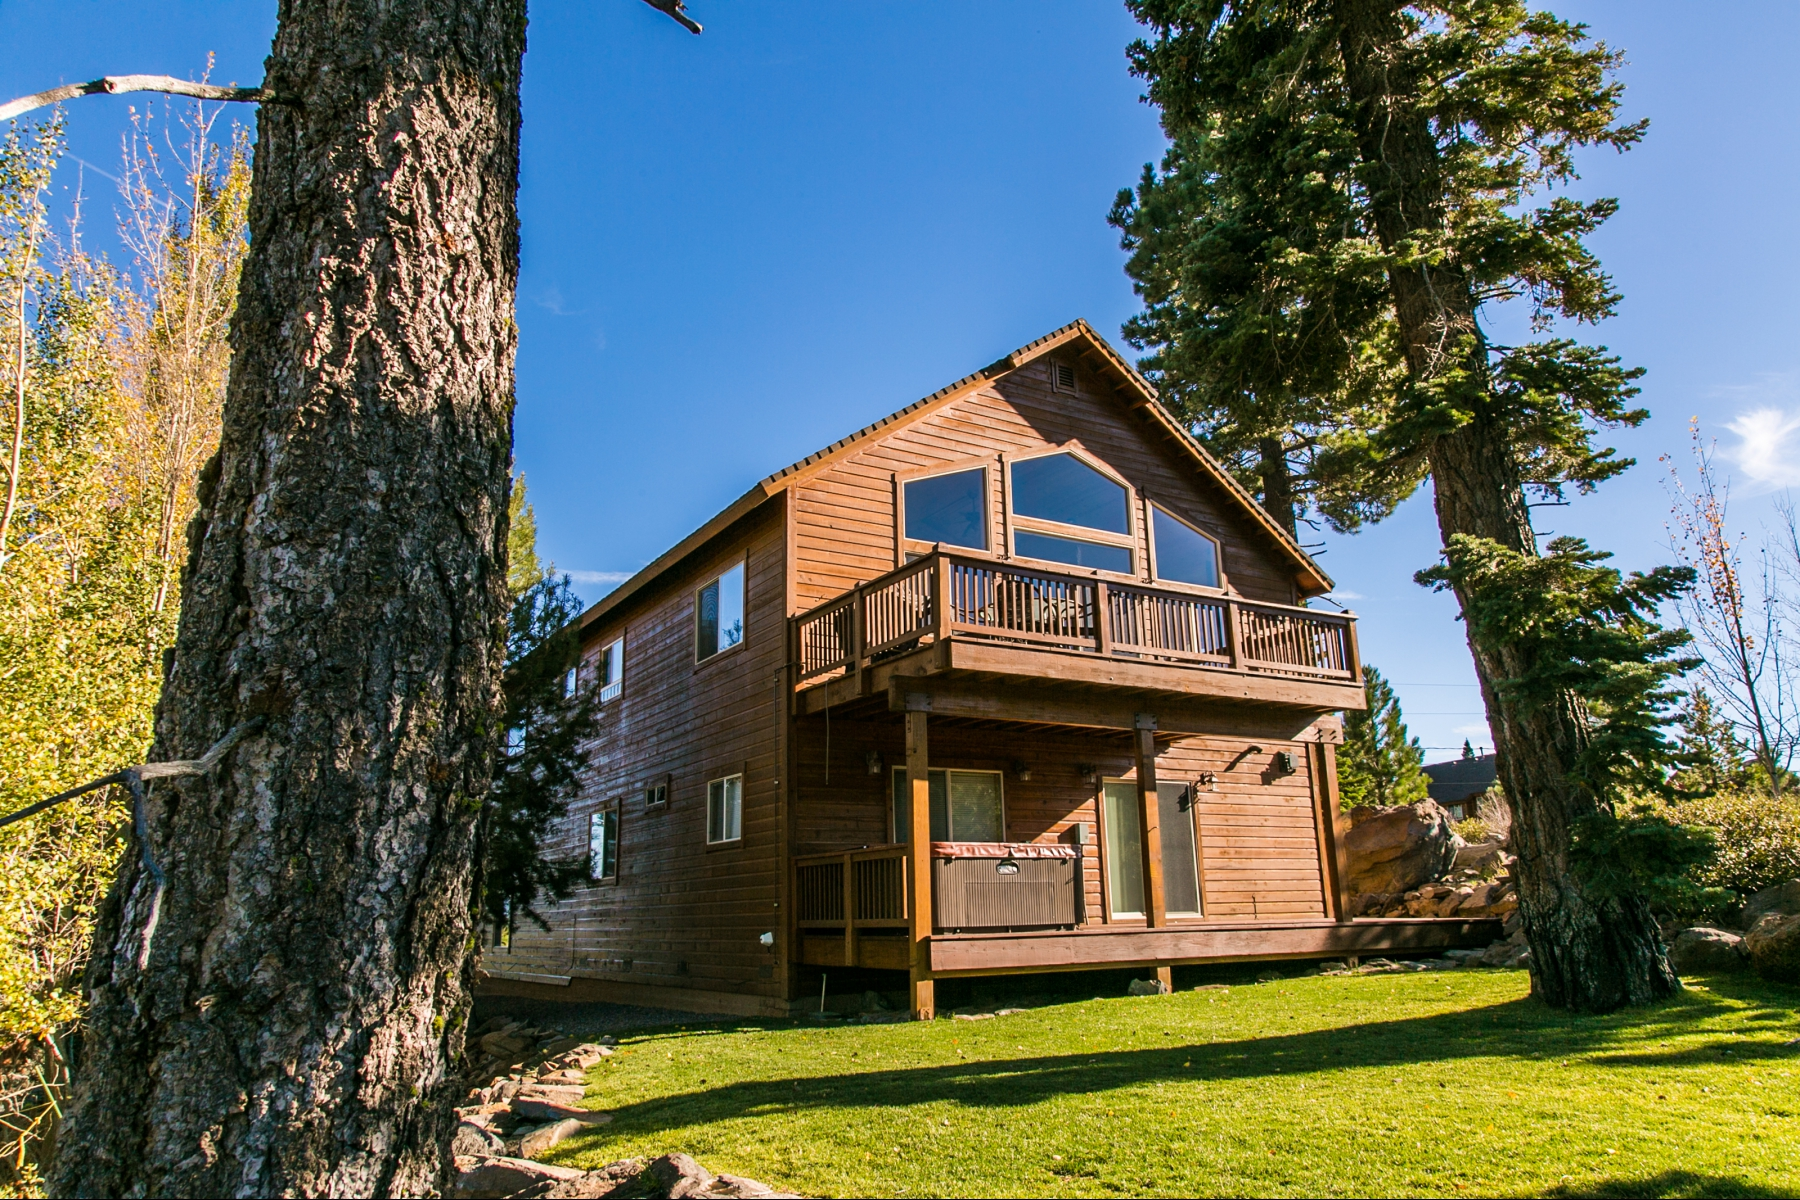 Single Family Home for Active at 13331 Hillside Drive Truckee, California 96161 United States